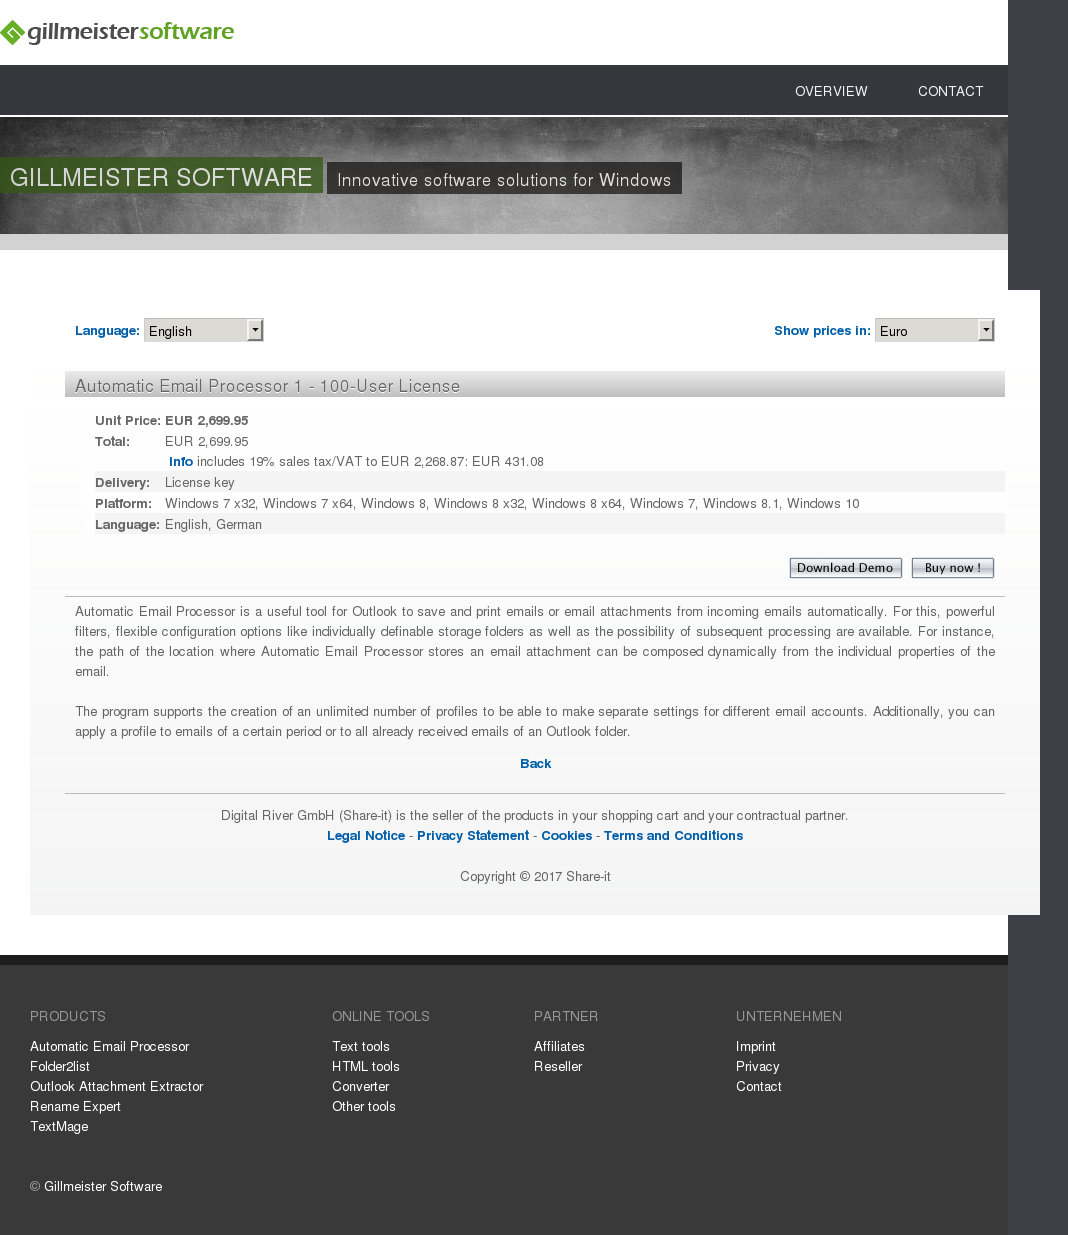 Automatic Email Processor 1 - 100-User License